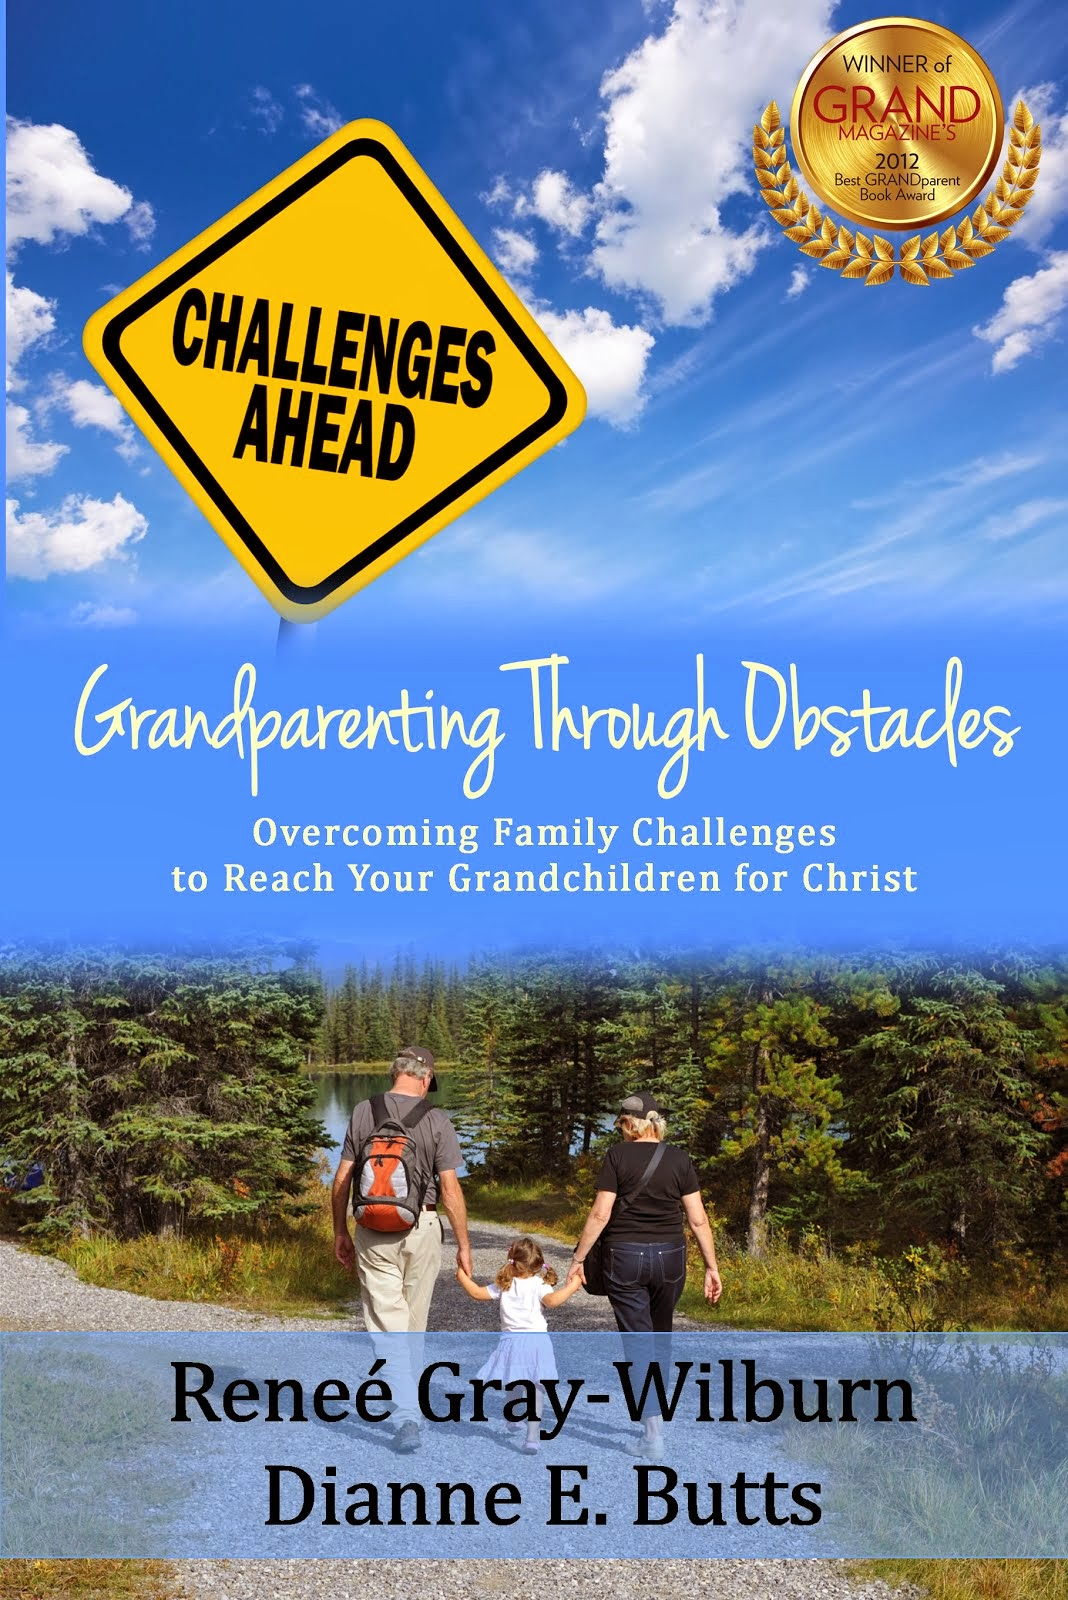 SOLD OUT: Grandparenting Through Obstacles